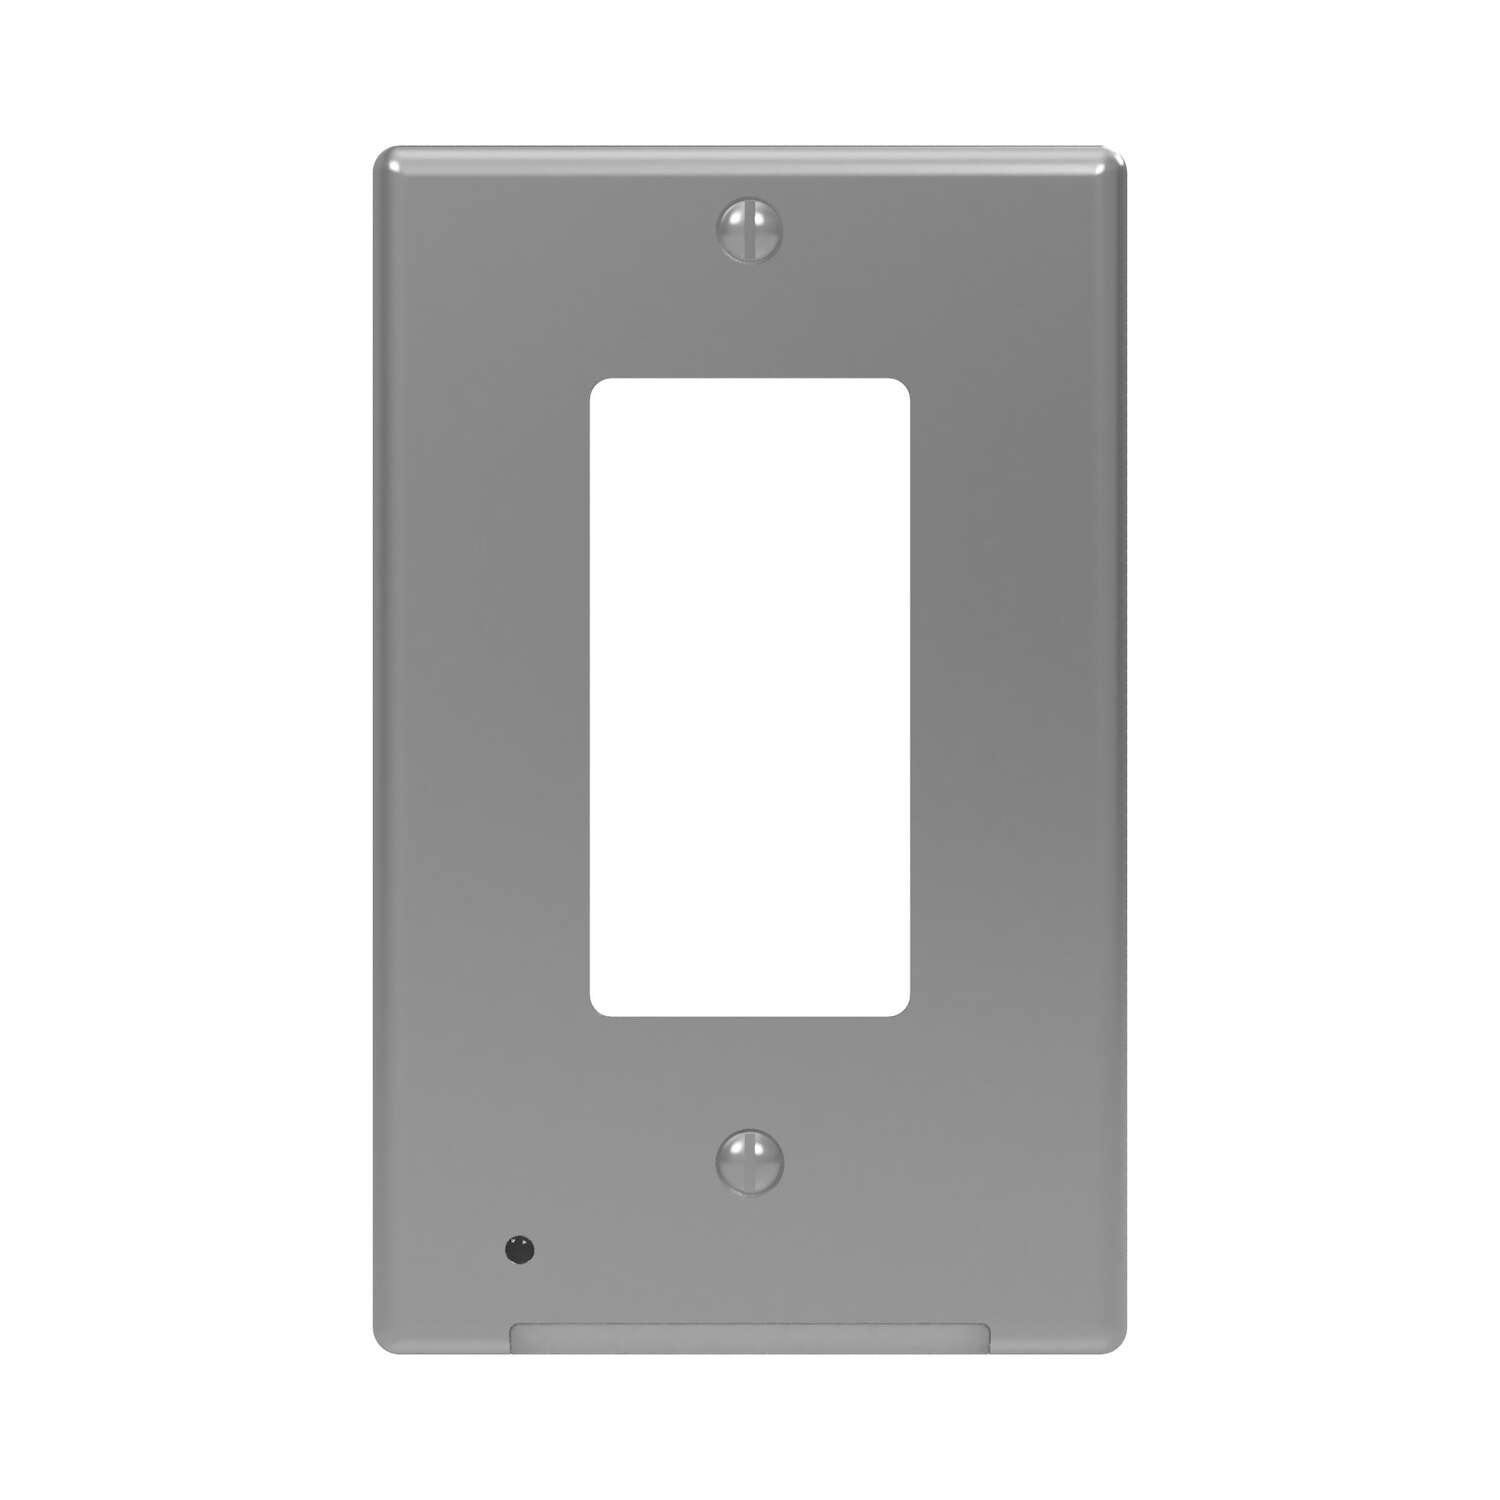 Westek  LumiCover  Satin Nickel  1 gang Plastic  Rocker  Nightlight Wall Plate  1 pk